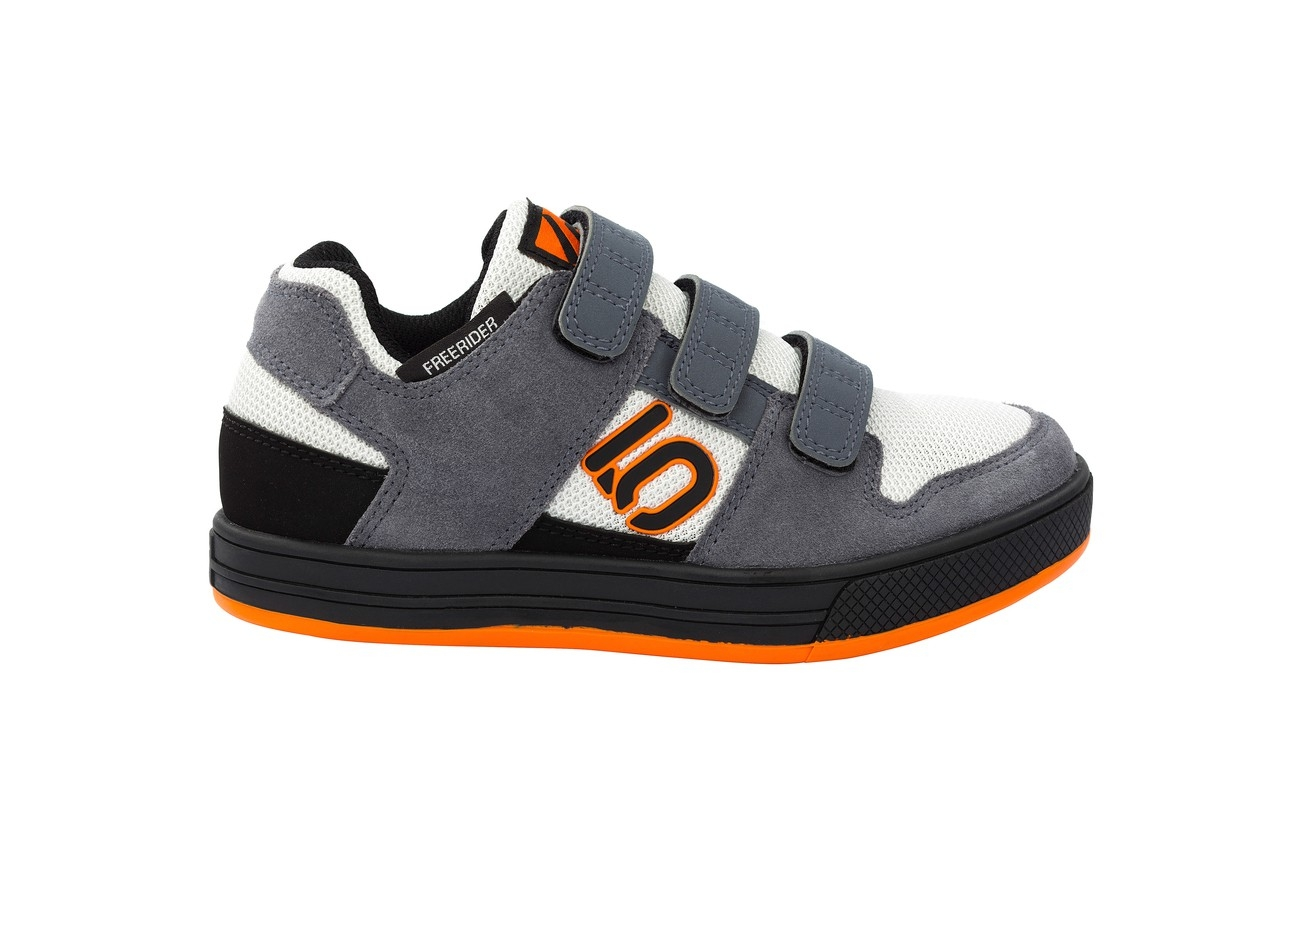 Chaussures Five Ten Freerider VCS Enfant Gris/Orange - UK-1.5 (34)